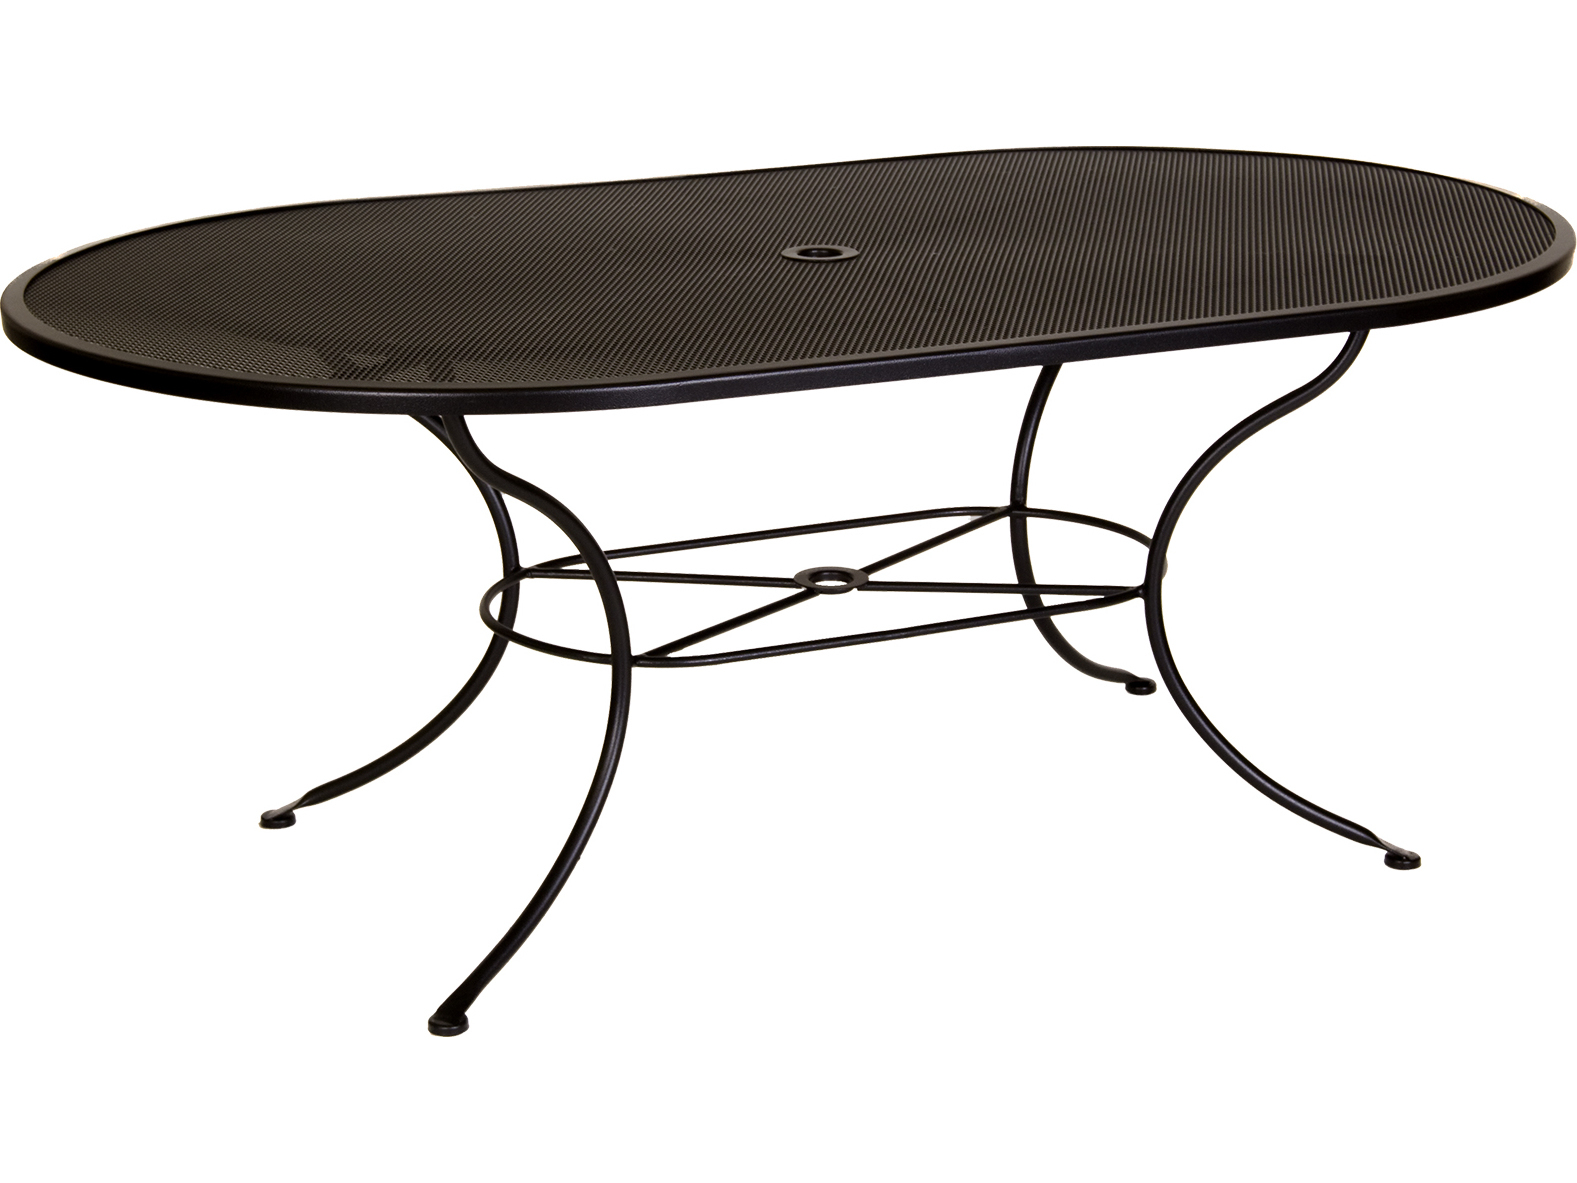 OW Lee Micro Mesh Wrought Iron 72 X 42 Oval Dining Table